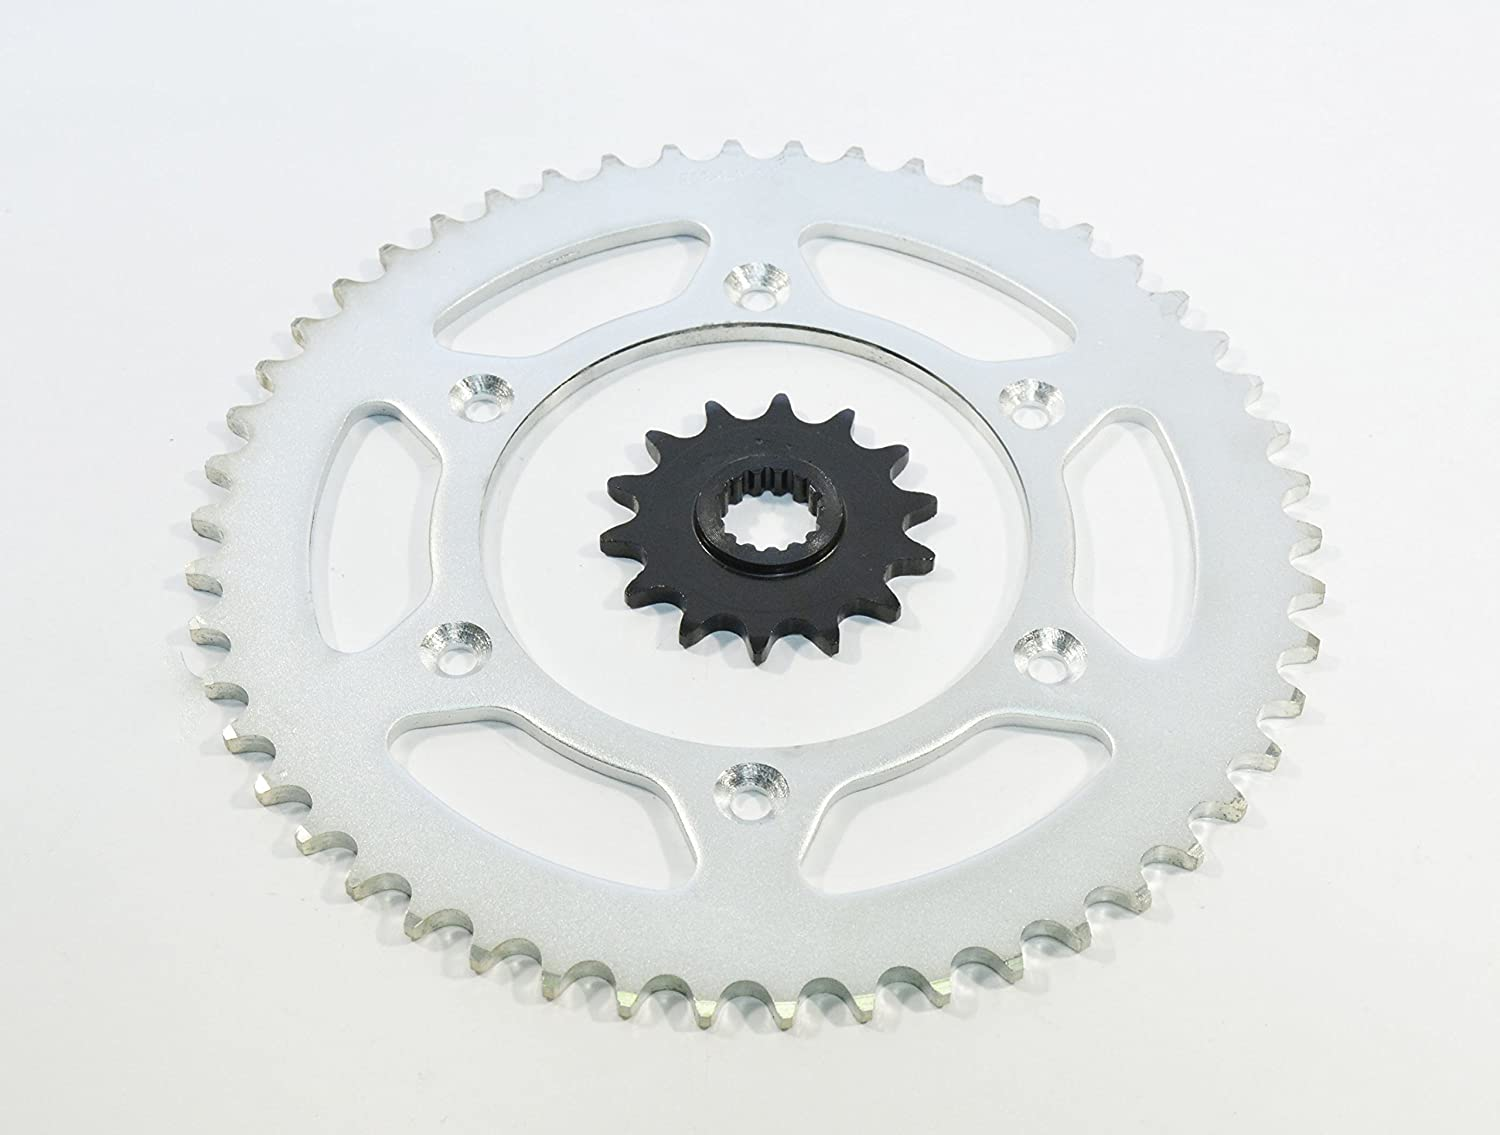 1999-2007 fits KTM 400 SX 400 14 Tooth Front And 50 Tooth Rear Sprocket